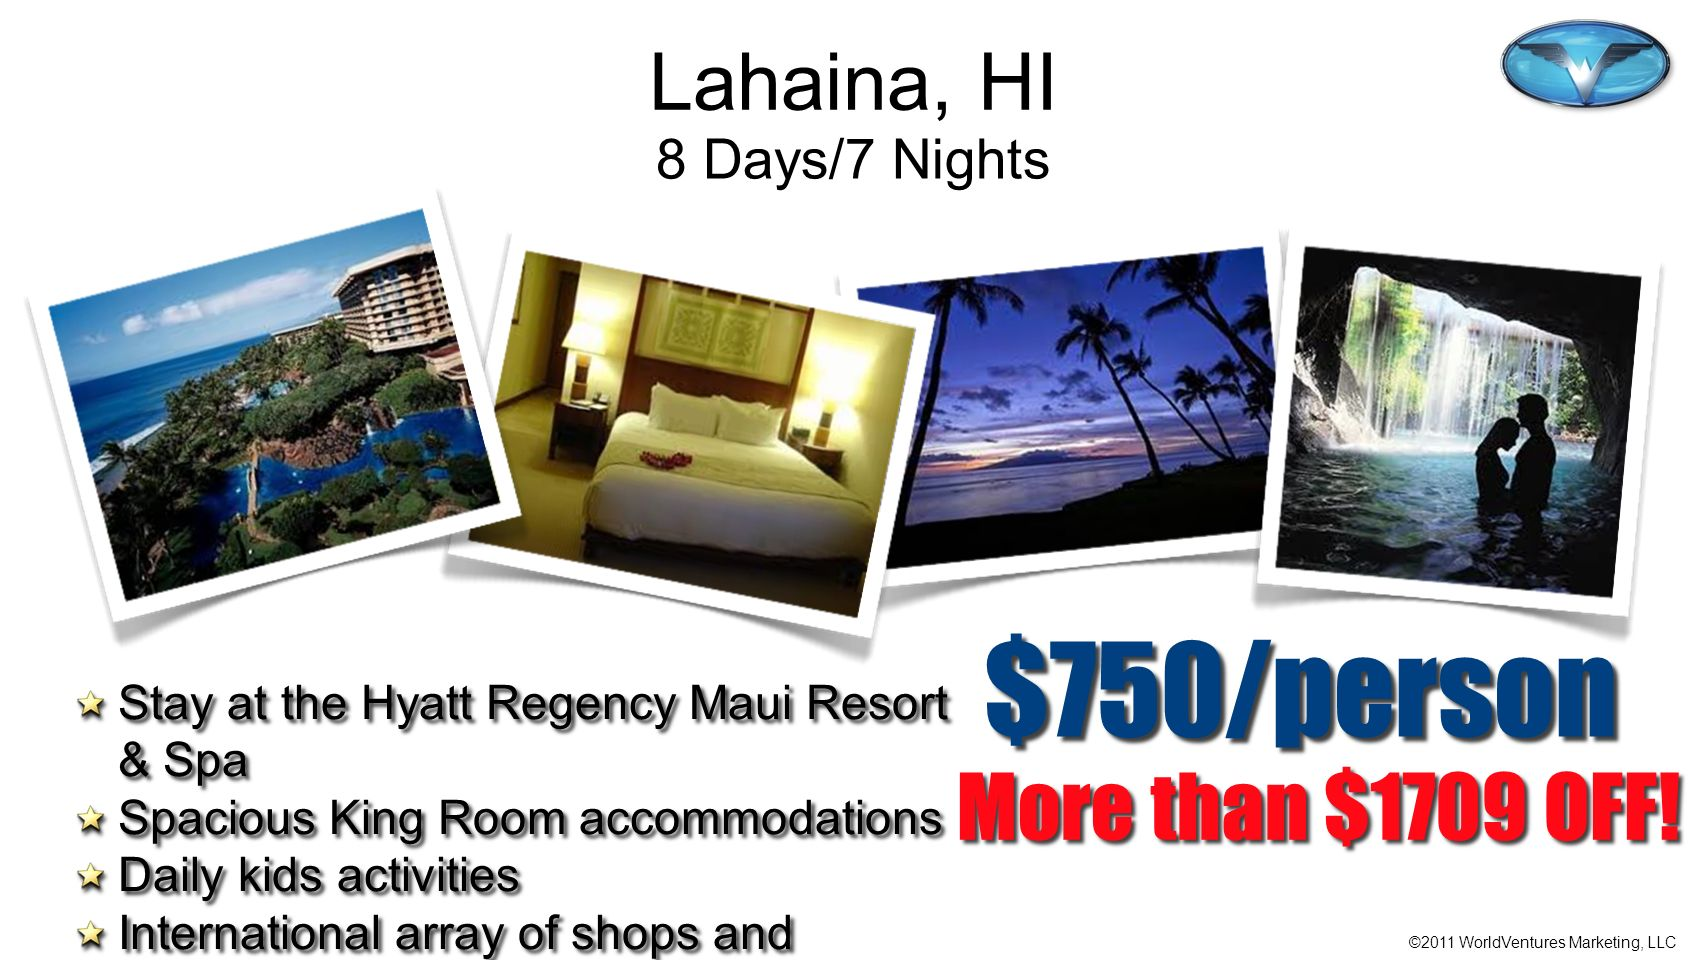 ©2011 WorldVentures Marketing, LLC More than $1709 OFF! $750/person Stay at the Hyatt Regency Maui Resort & Spa Spacious King Room accommodations Dail